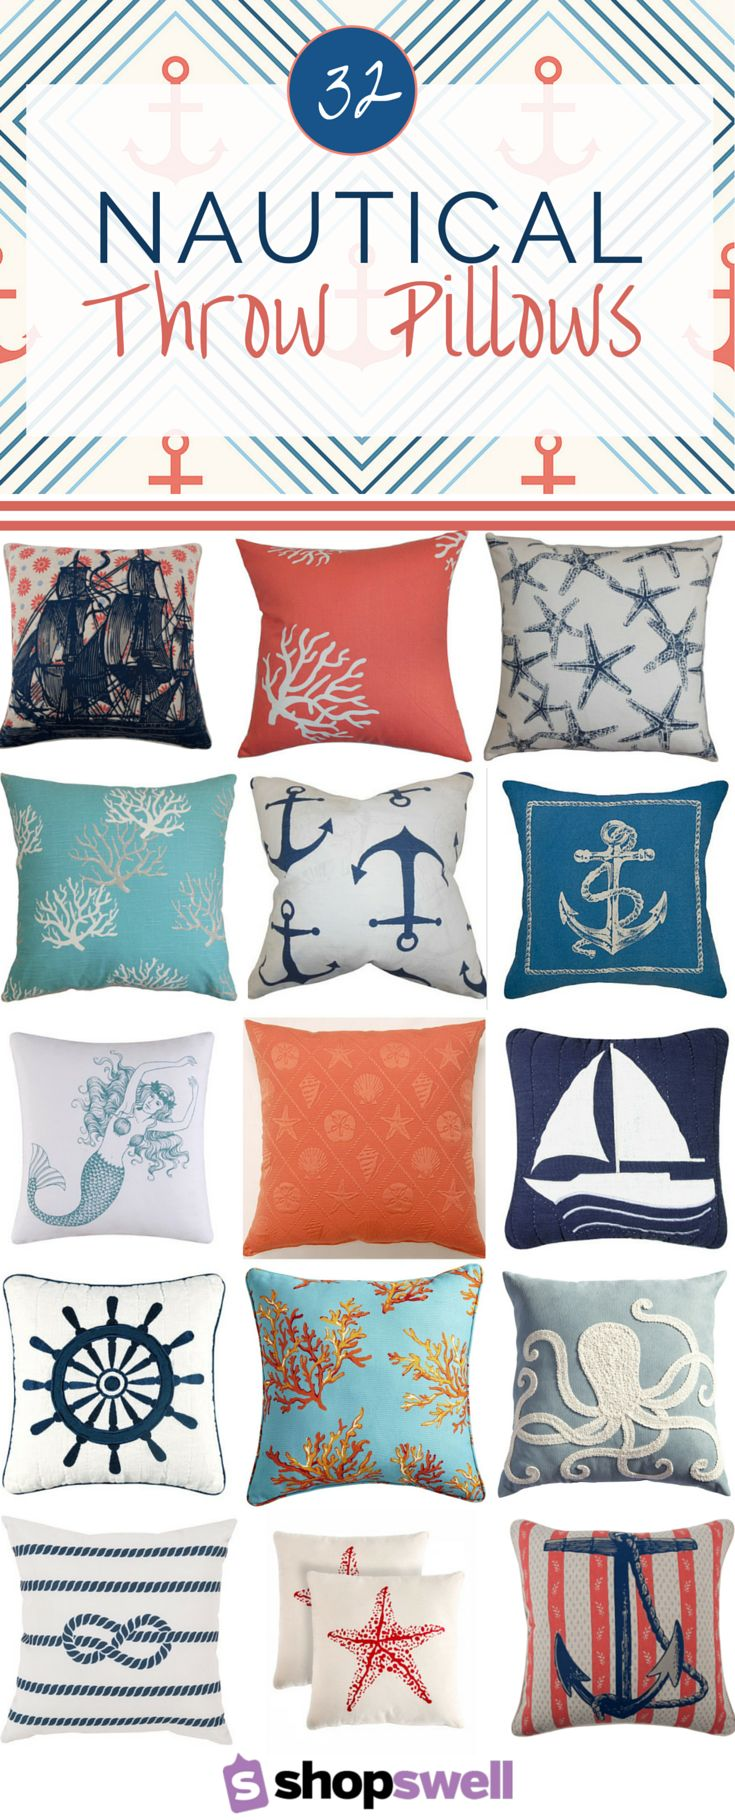 Add a little maritime flair to your space with one of these fabulous nautical throw pillows.